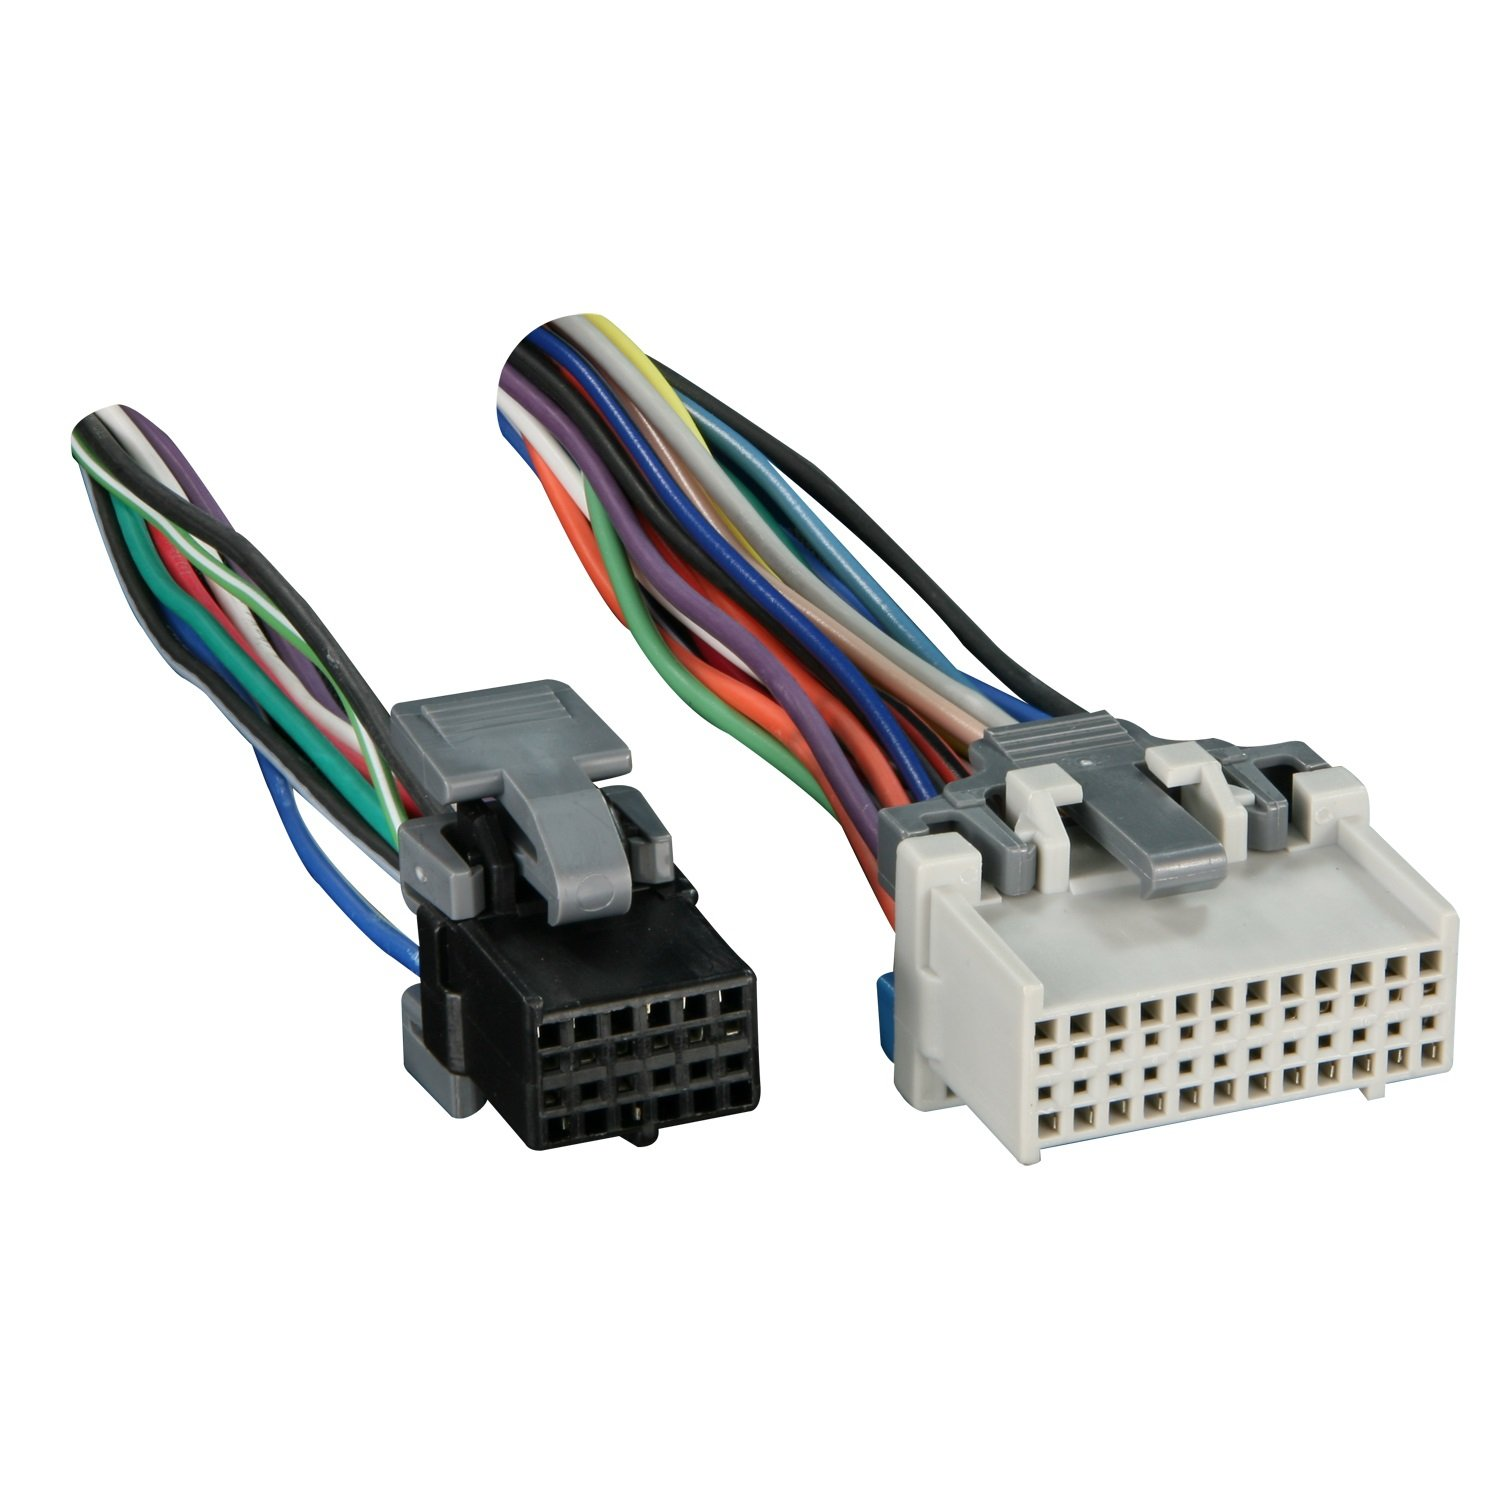 711log4bdML._SL1500_ amazon com metra turbowires 71 2003 1 wiring harness car electronics  at crackthecode.co